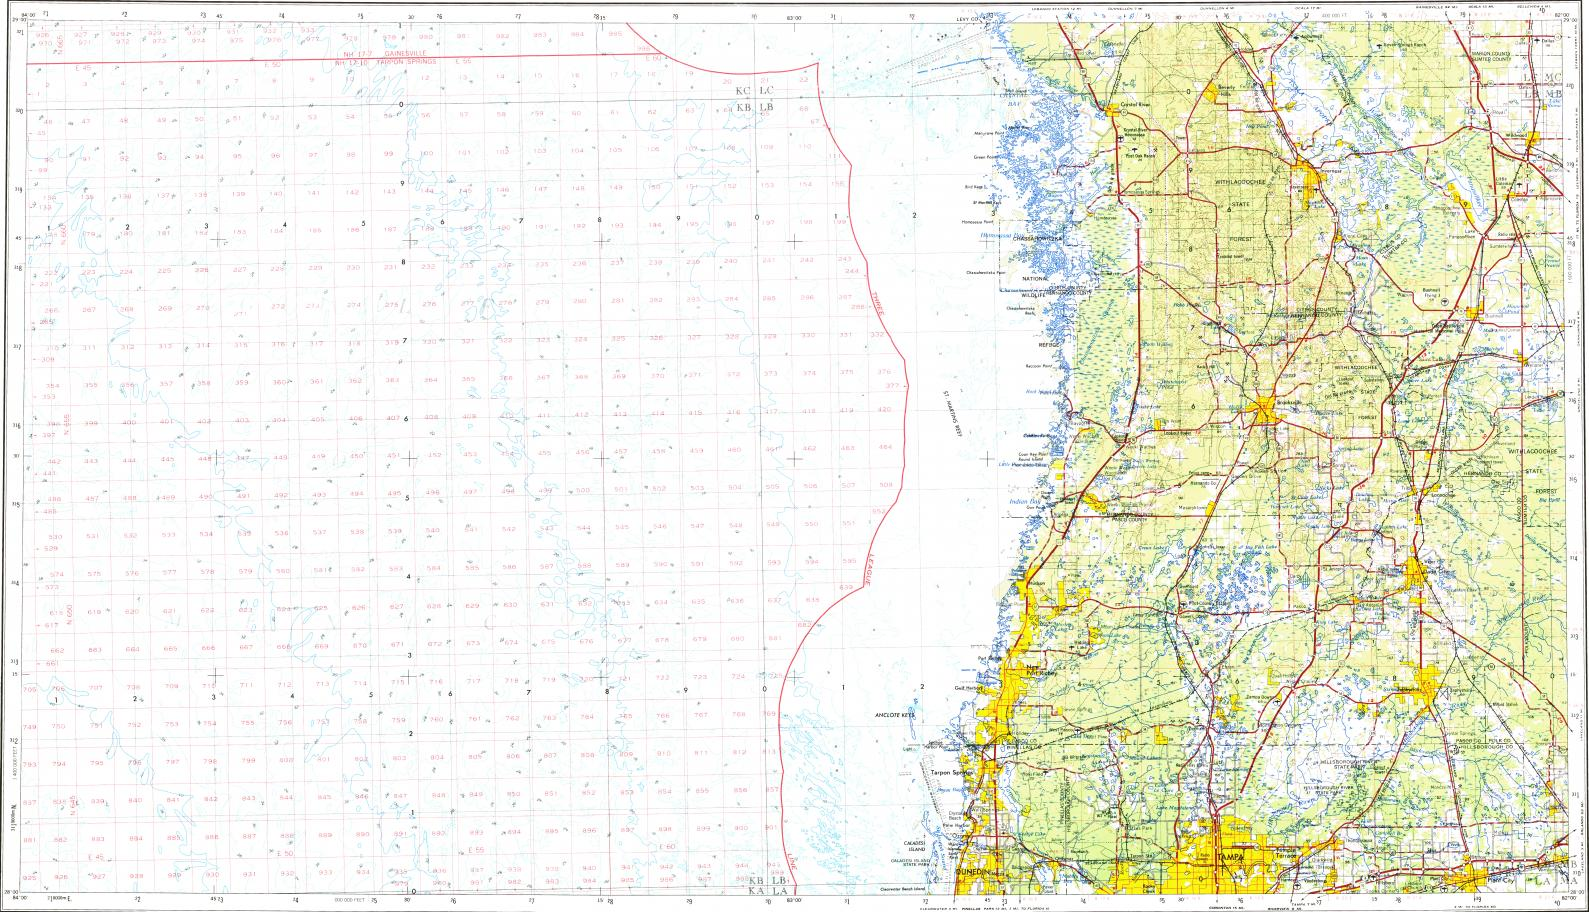 Download topographic map in area of Town n Country Palm Harbor